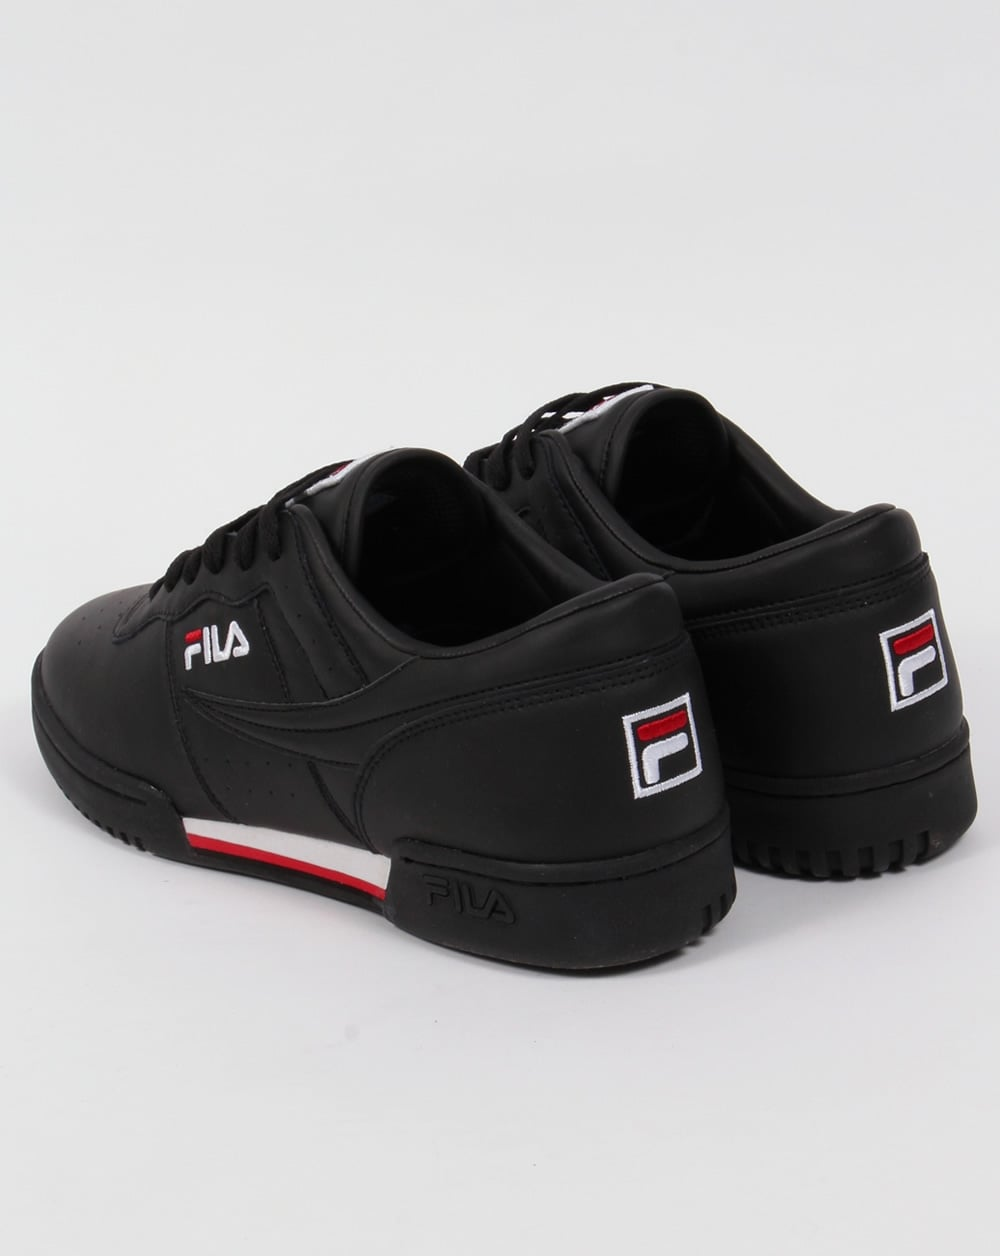 f52a7ffcf8bd Fila Vintage Original Fitness Trainers Black White Red